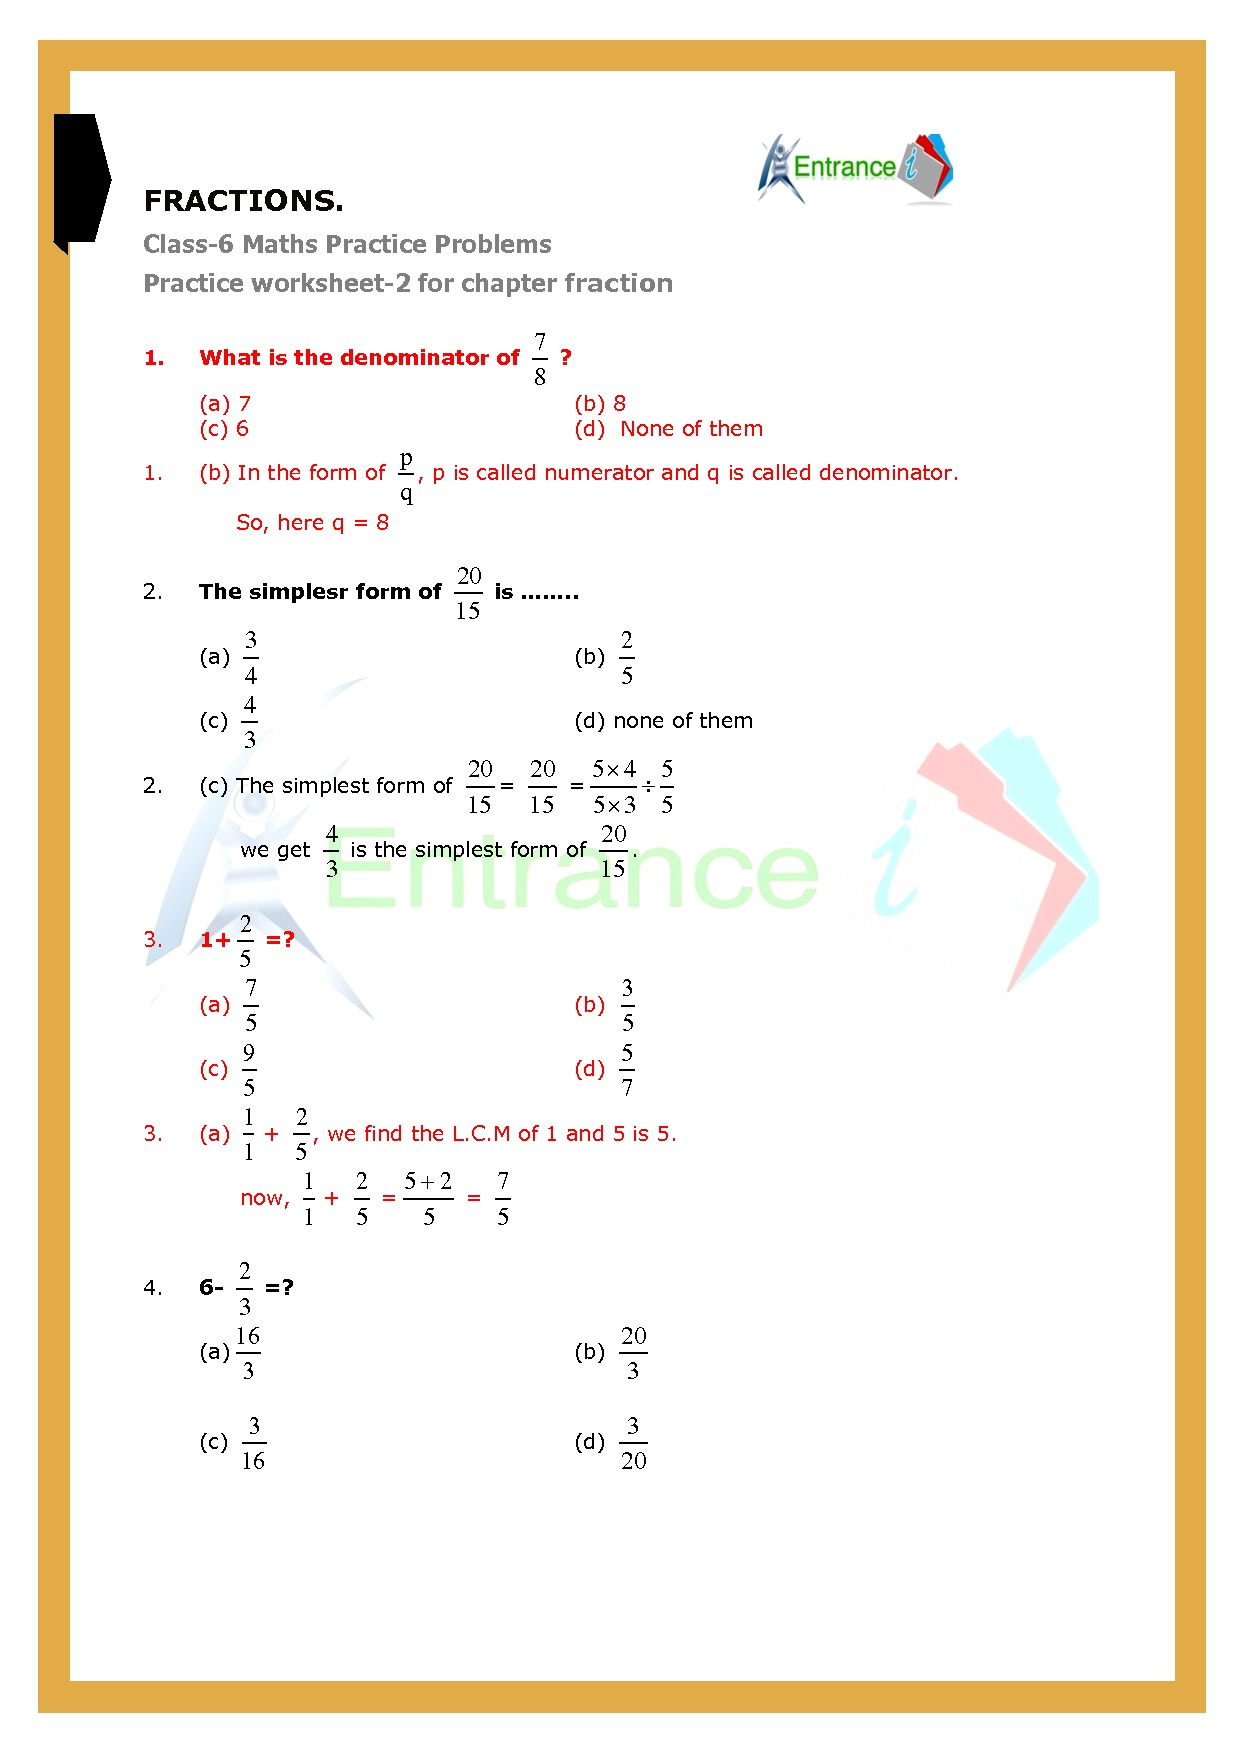 Worksheet 2 For Chapter Fractions Class 6 Maths